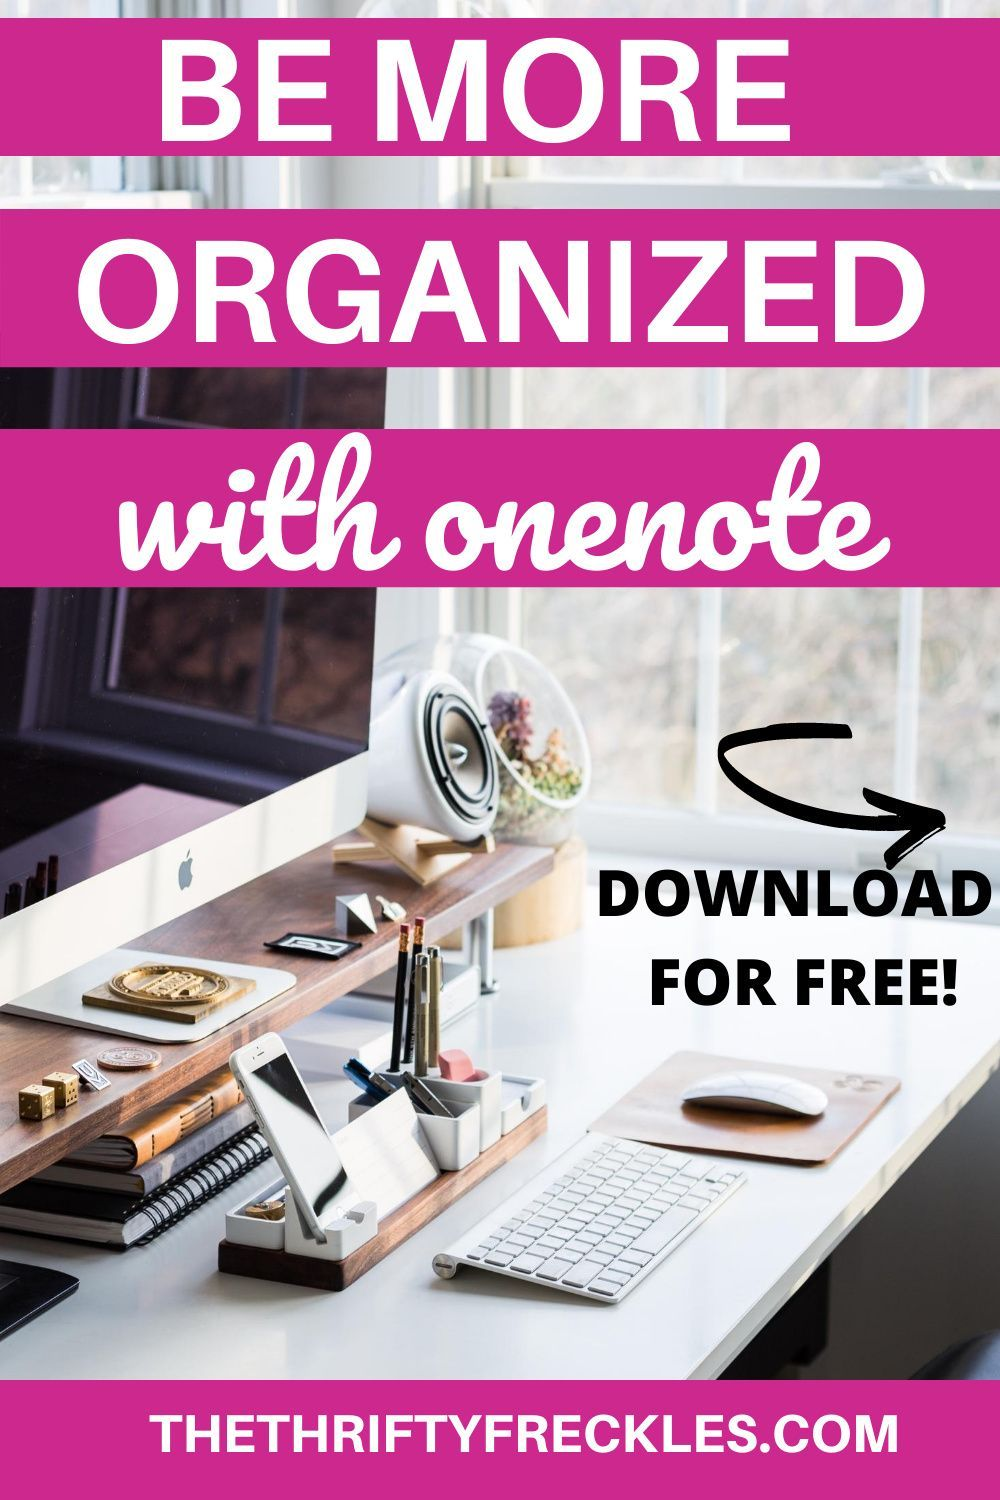 Free onenote template 20202021 calendar the thrifty